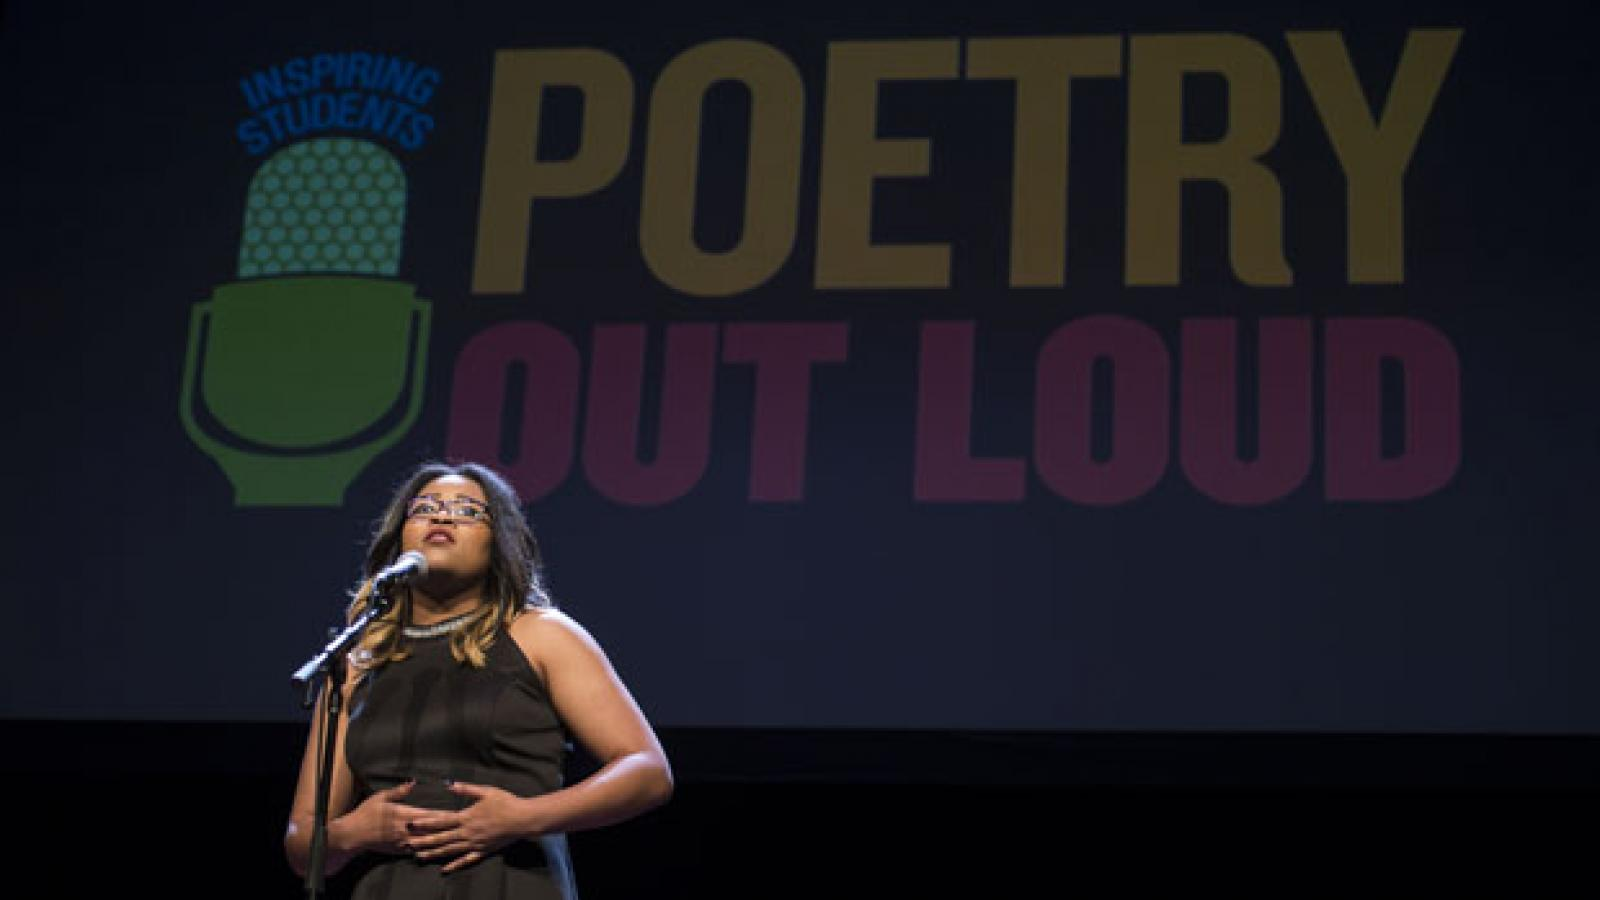 A teenage girl in a black dress speaks at a microphone with a Poetry Out Loud sign behind her.